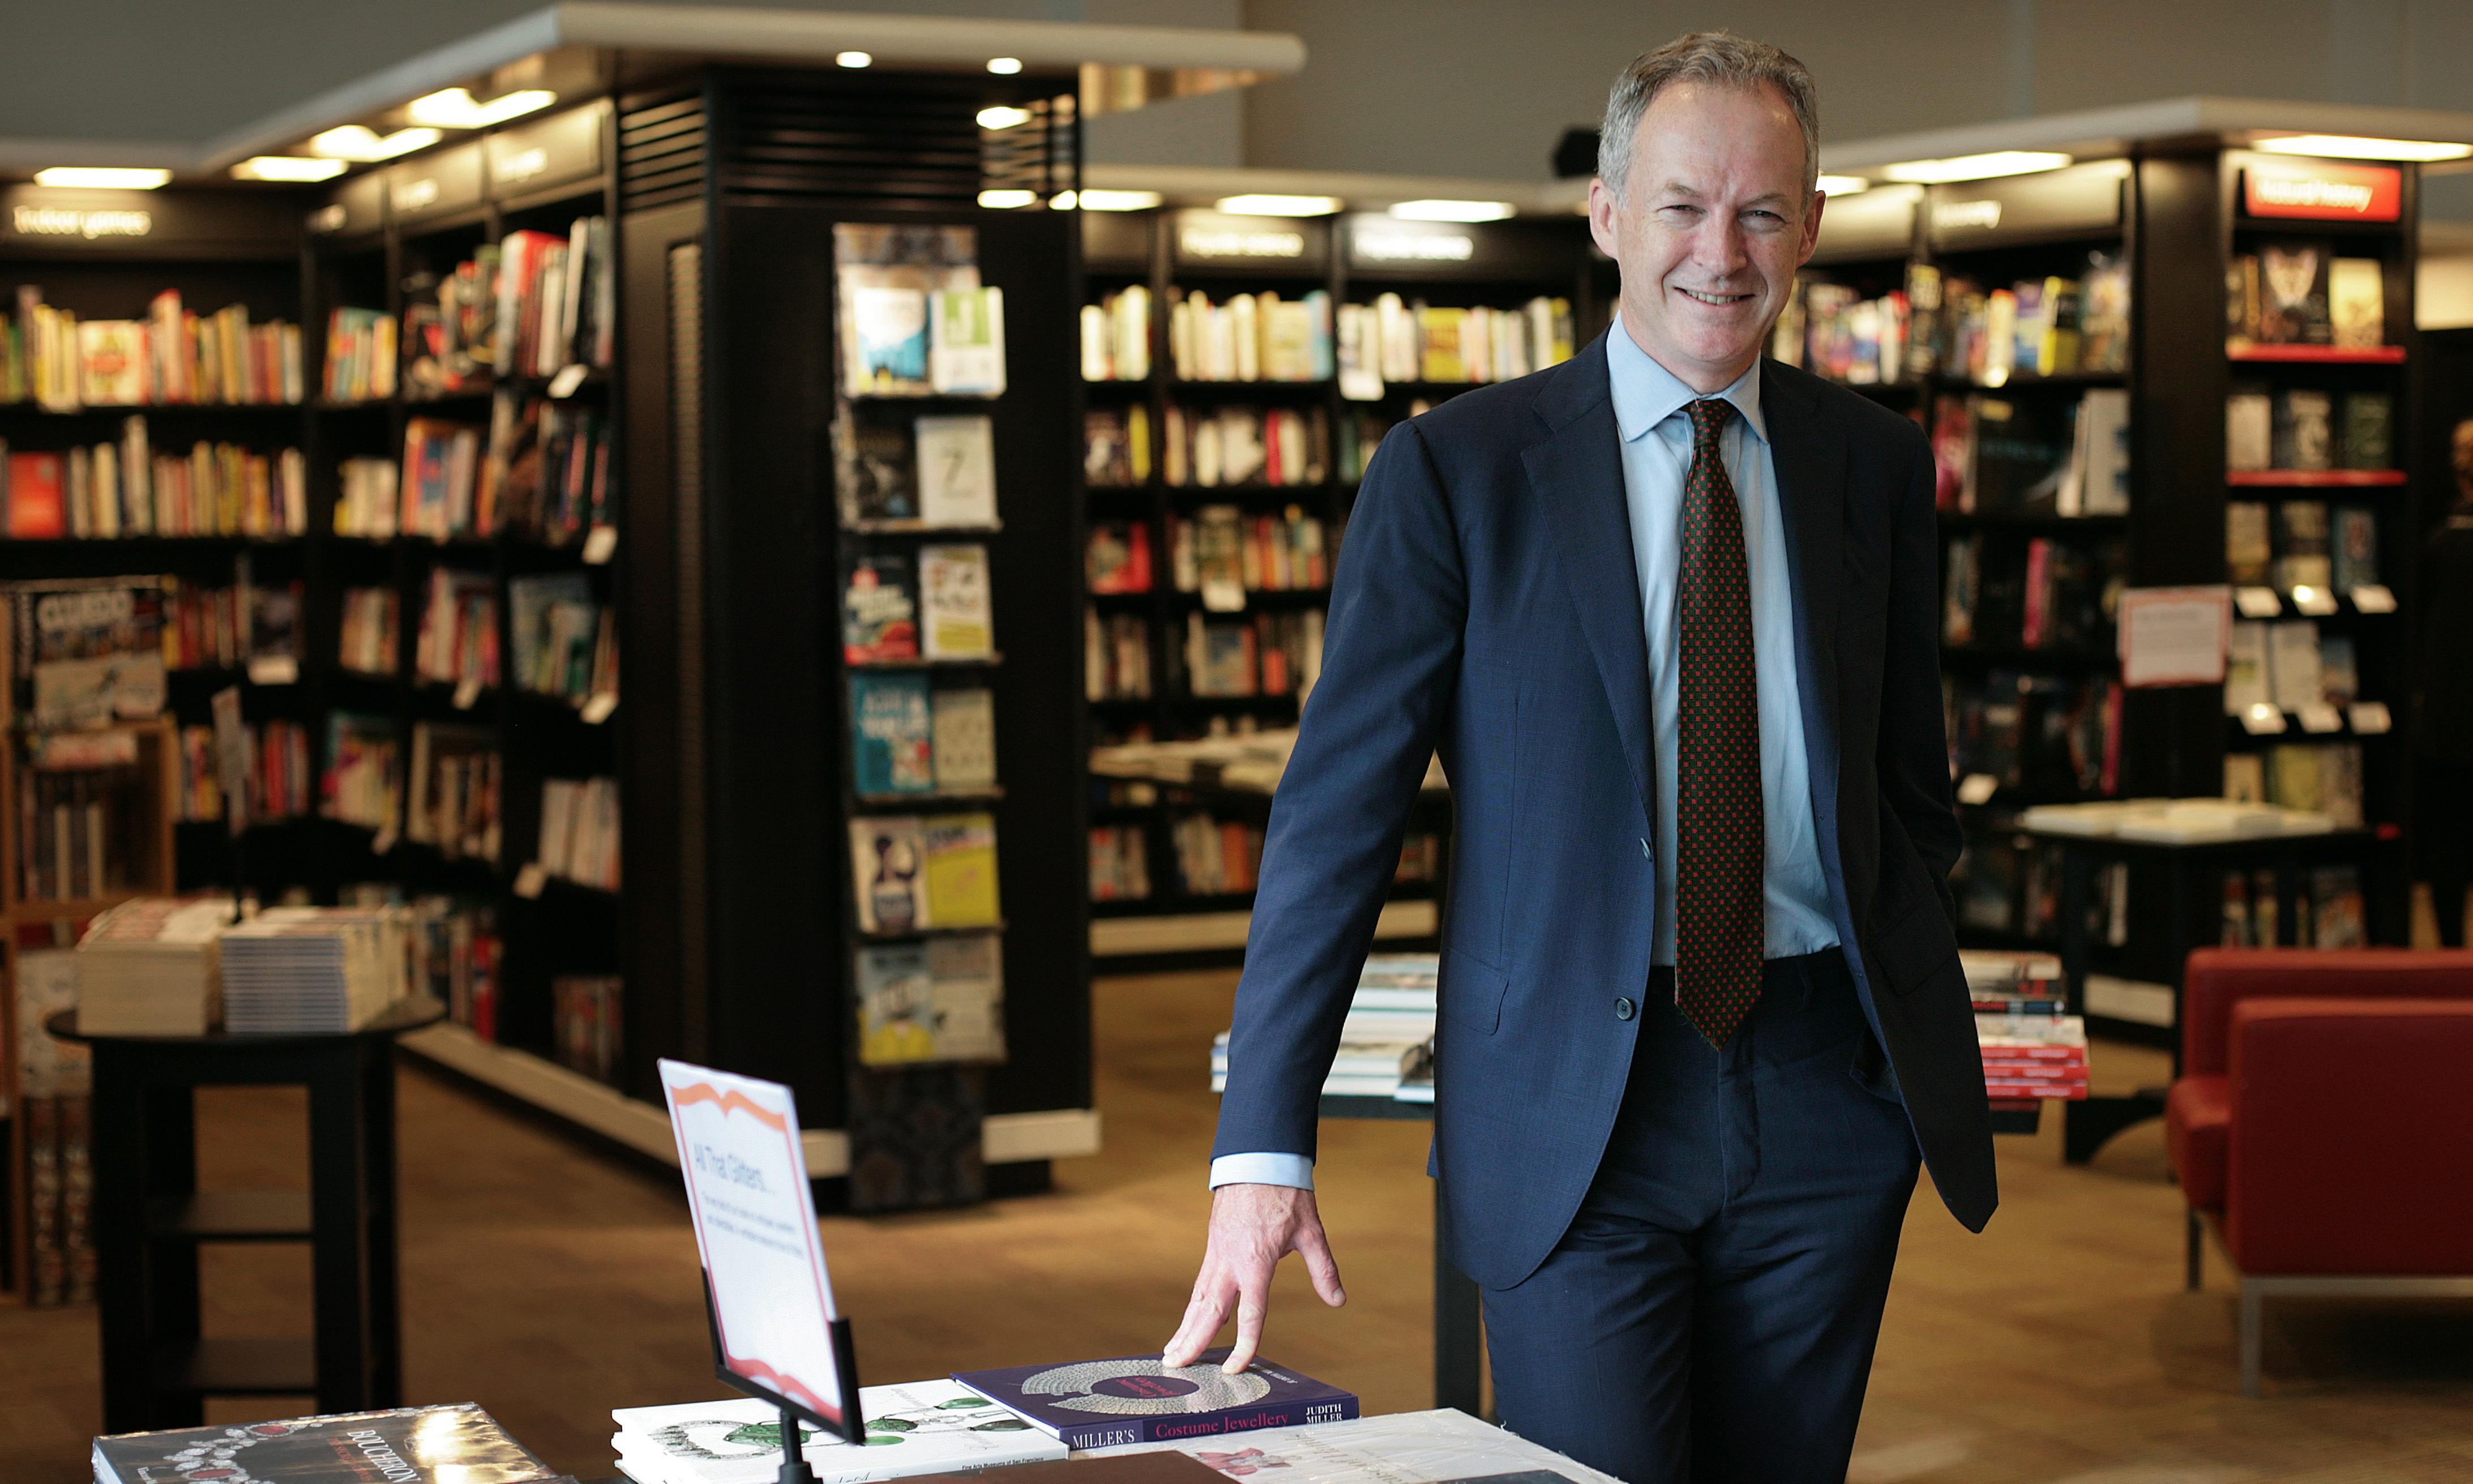 Waterstones says it can't pay living wage, as 1,300 authors support staff appeal